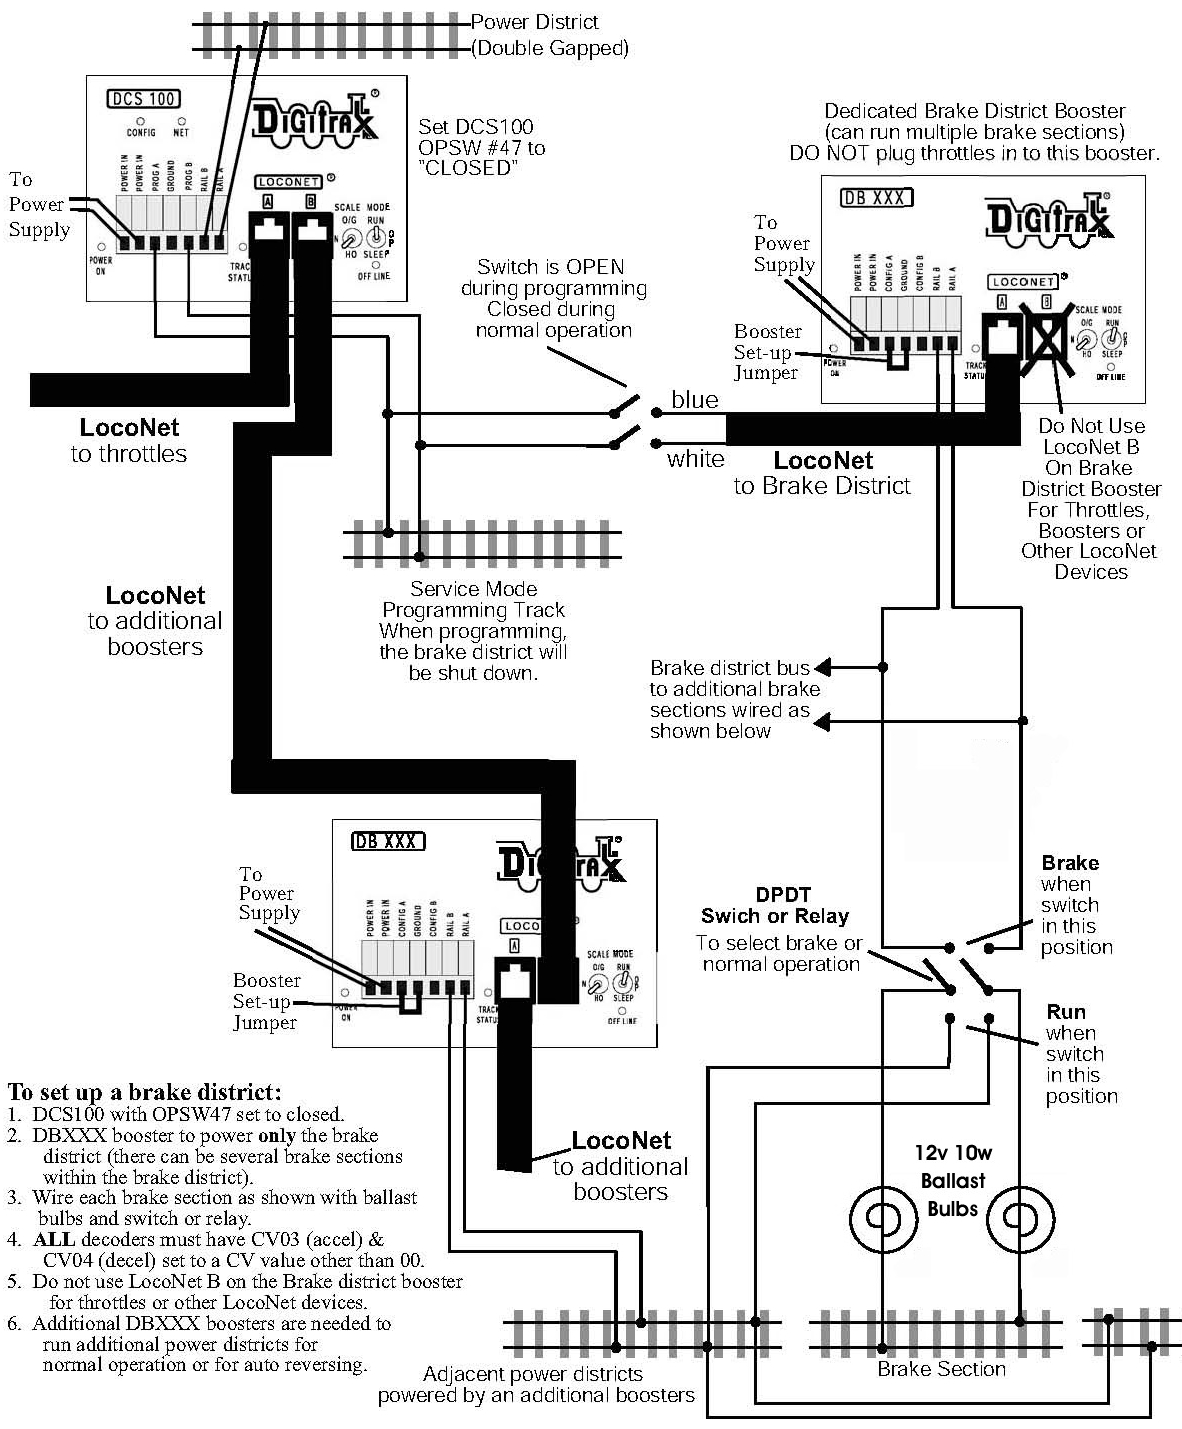 Empire Builder Digitrax Wiring Diagram, Empire, Get Free